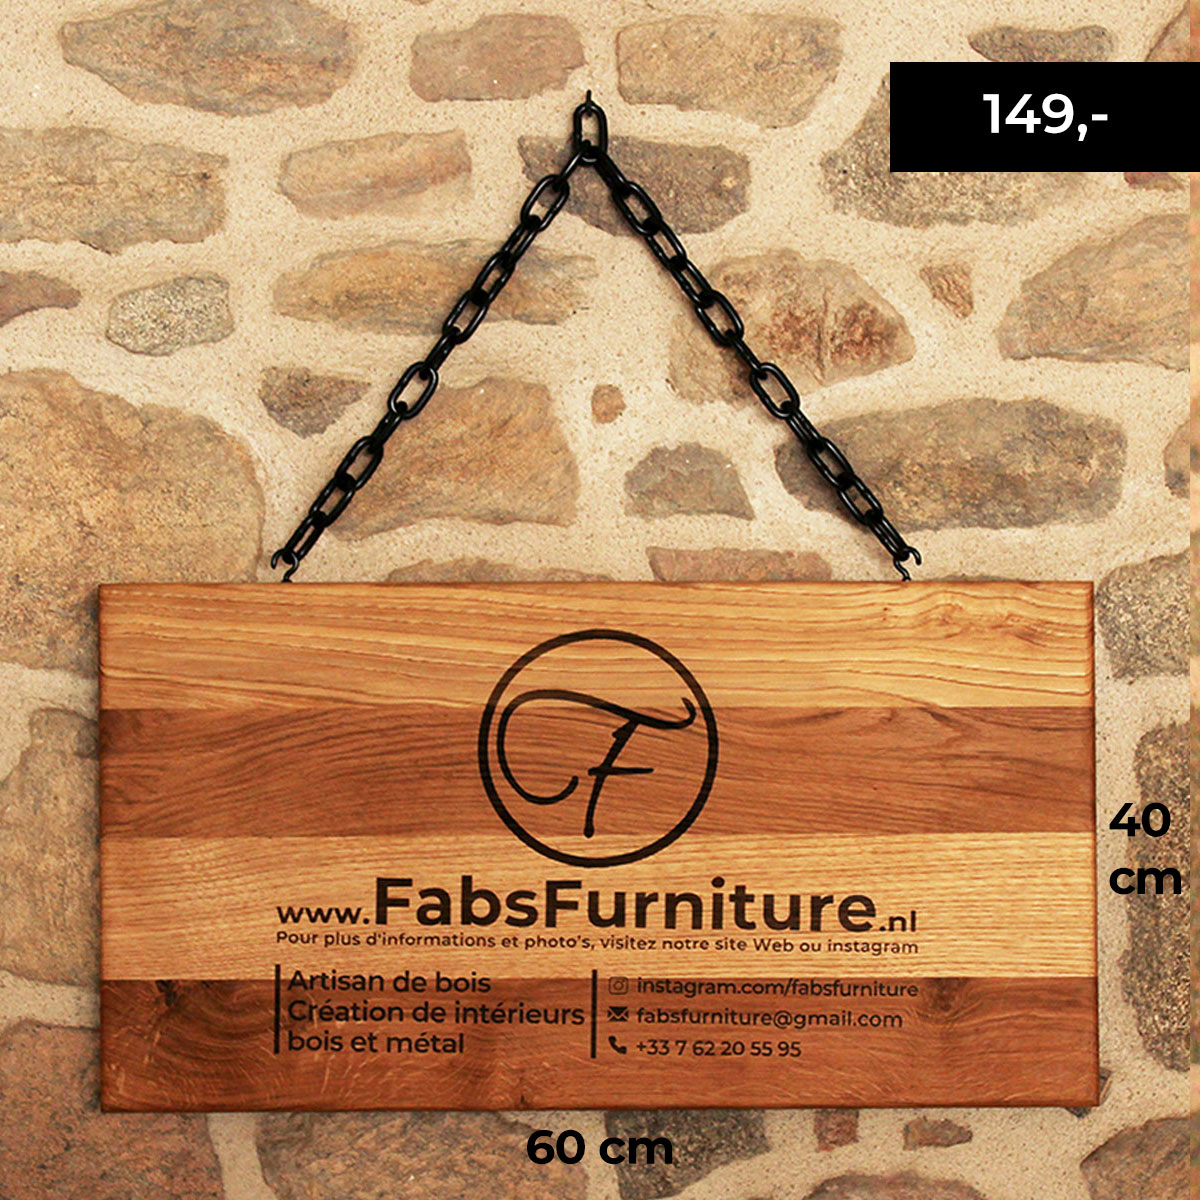 Wooden-Shop-sign-size-FabsFurniture